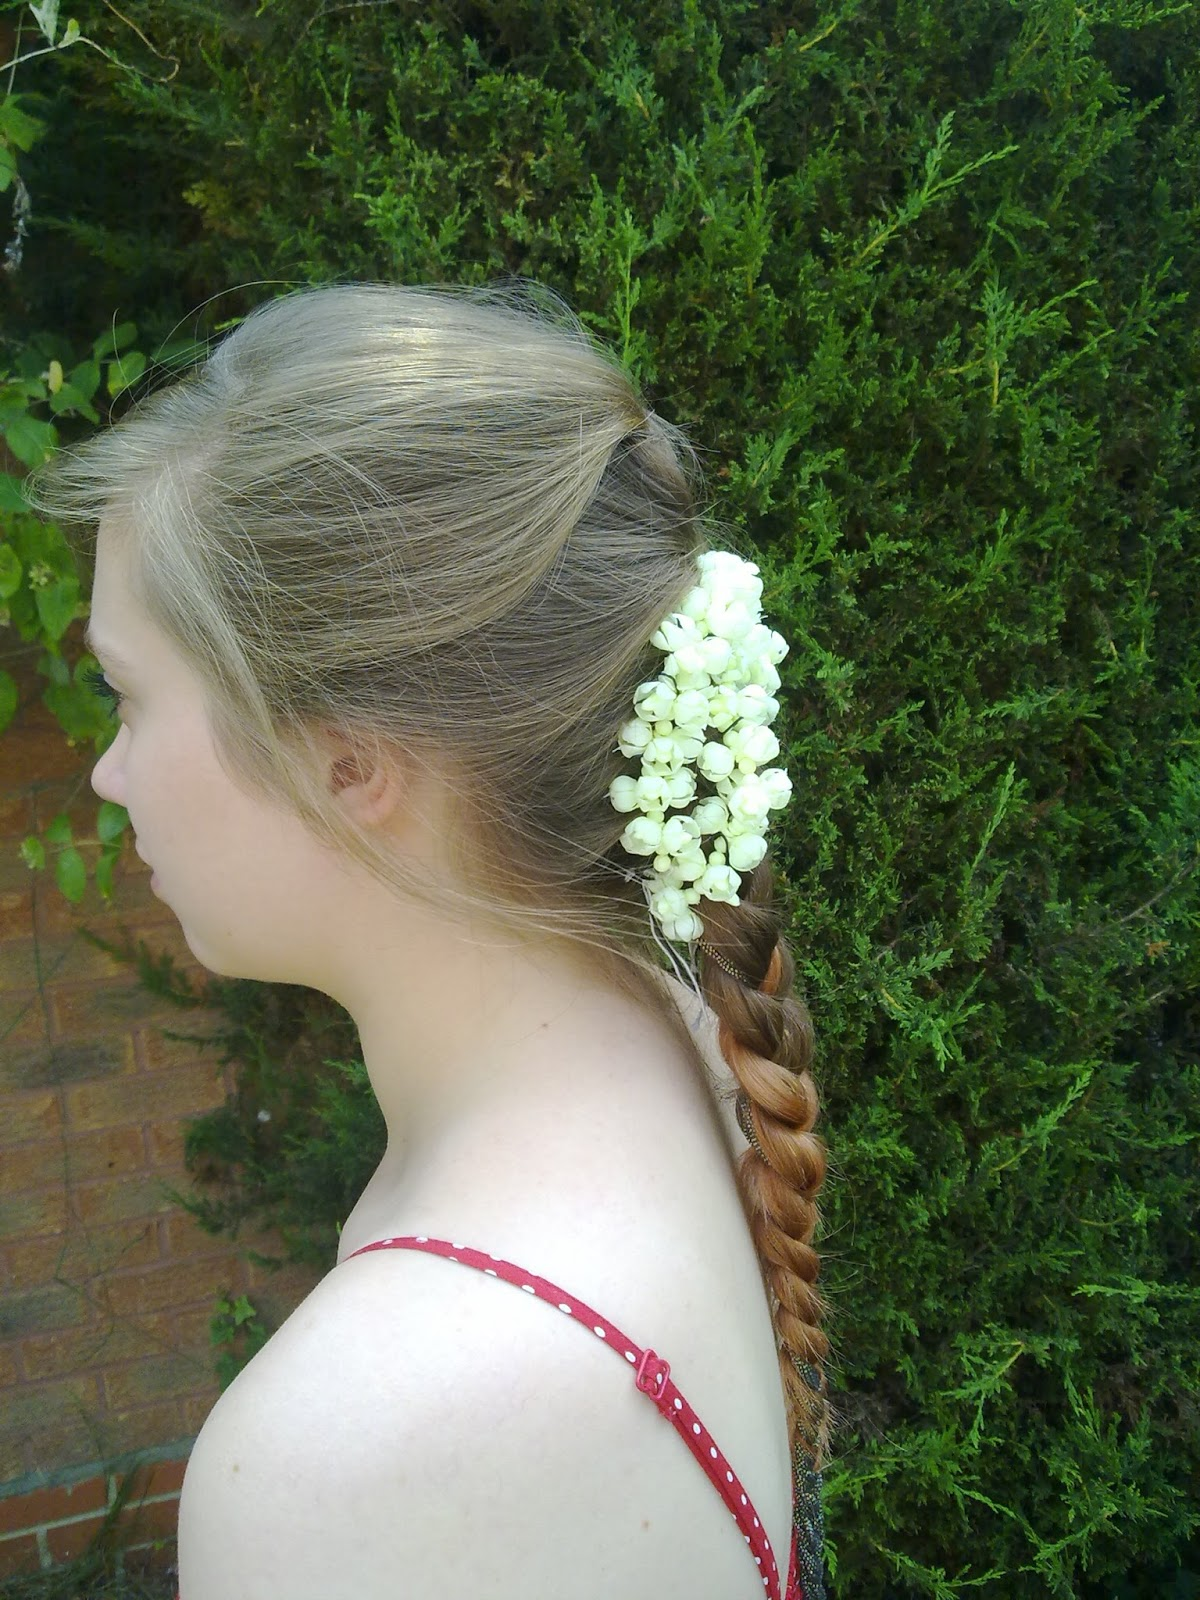 Pour la joie de la danse the guide to dance hair for non black hair this is what it would look like with flowers ideally these would be longer strings of flowers and would be fresh jasmine blossoms but alas were not in izmirmasajfo